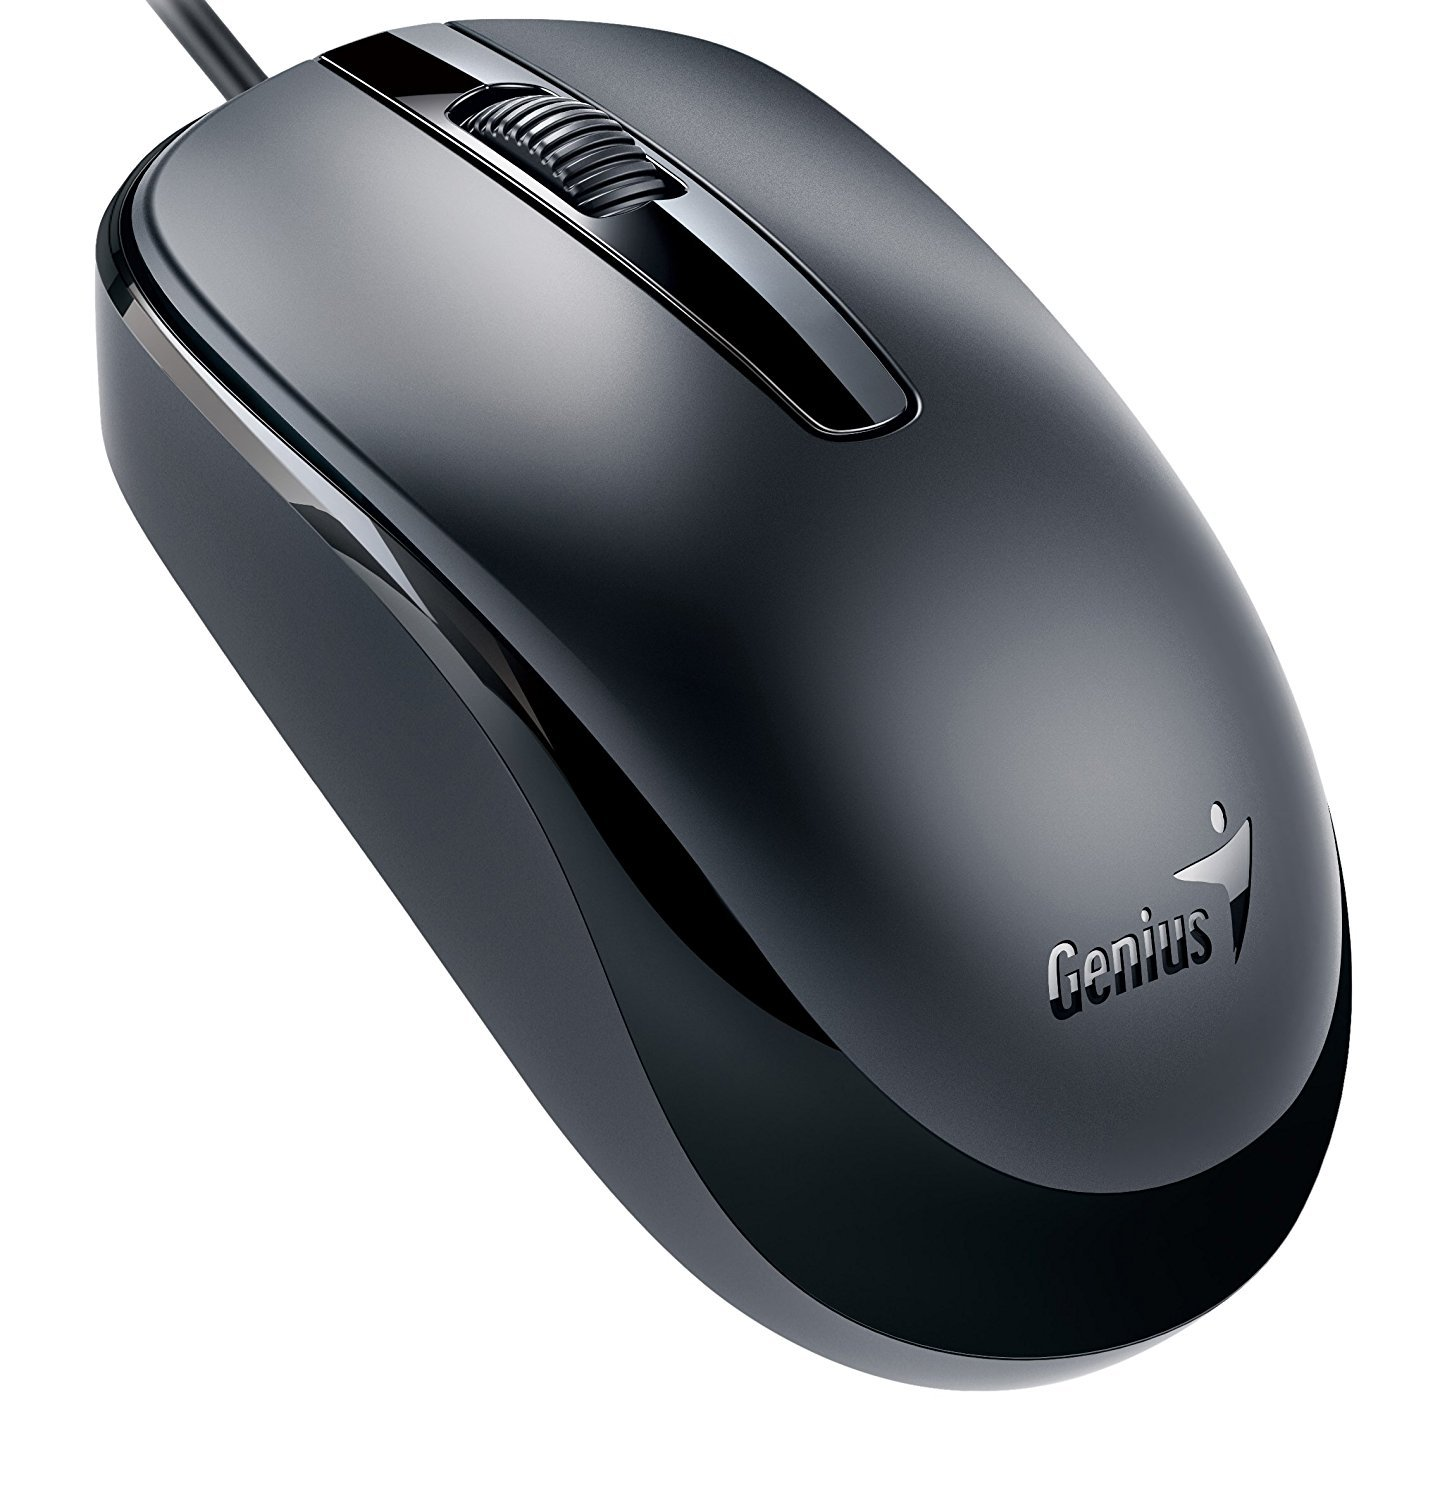 Usb Computer Mouse, Classic Laptop Pc Travel Mouse Wired Usb, Black